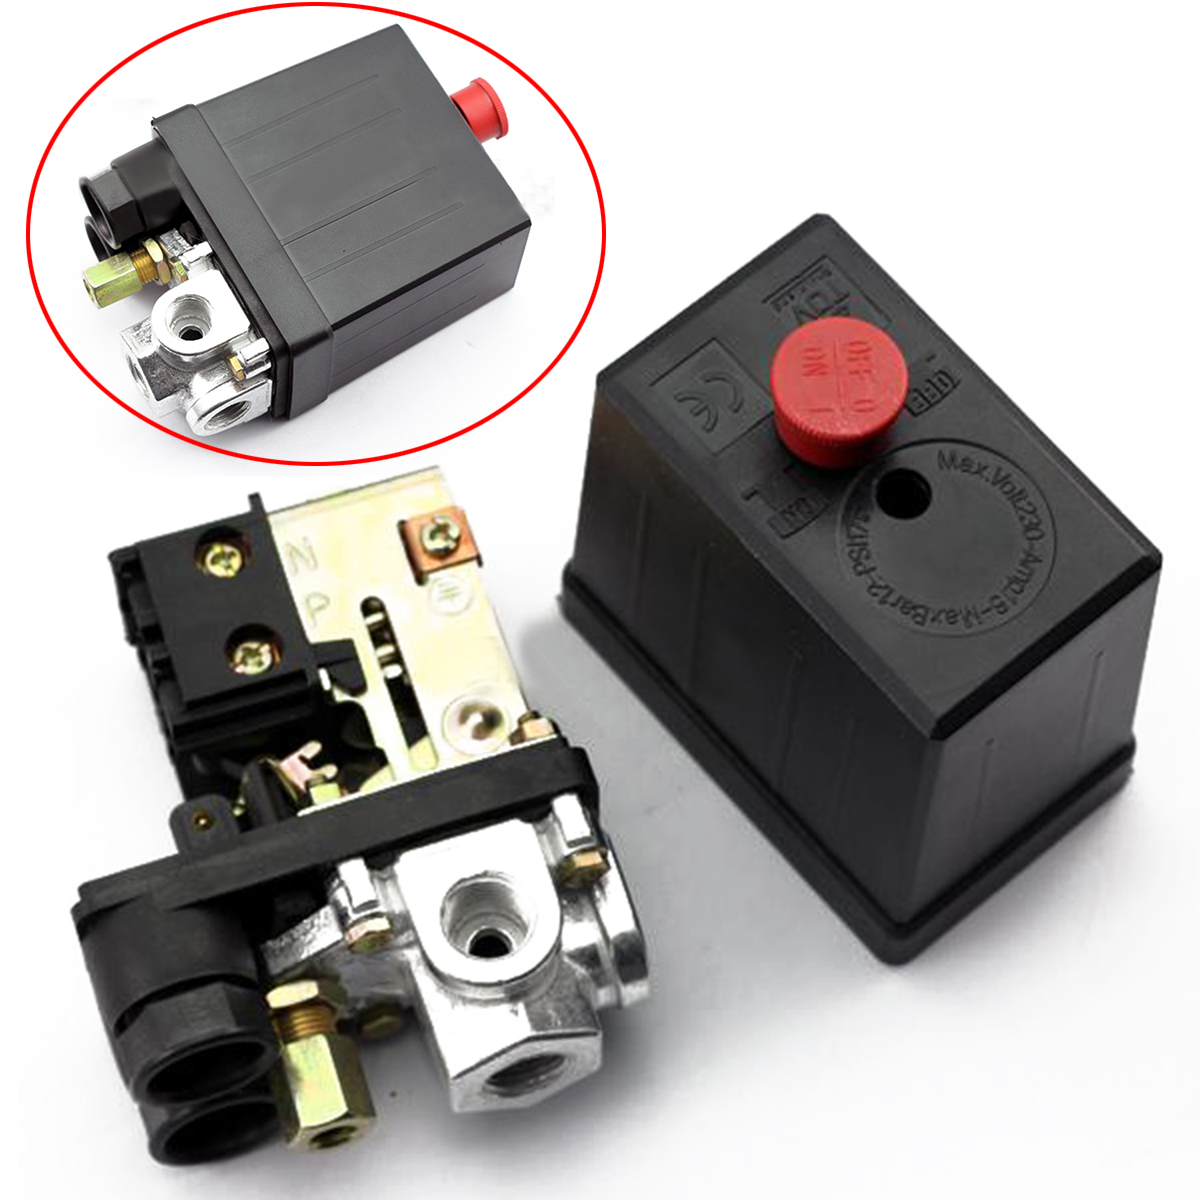 High Quality Durable Mayitr Air Compressor Pressure Switch 240V 16A 90 PSI -120 PSI Heavy Duty Red ON/OFF Switch Control Valve vertical type replacement part 1 port spdt air compressor pump pressure on off knob switch control valve 80 115 psi ac220 240v